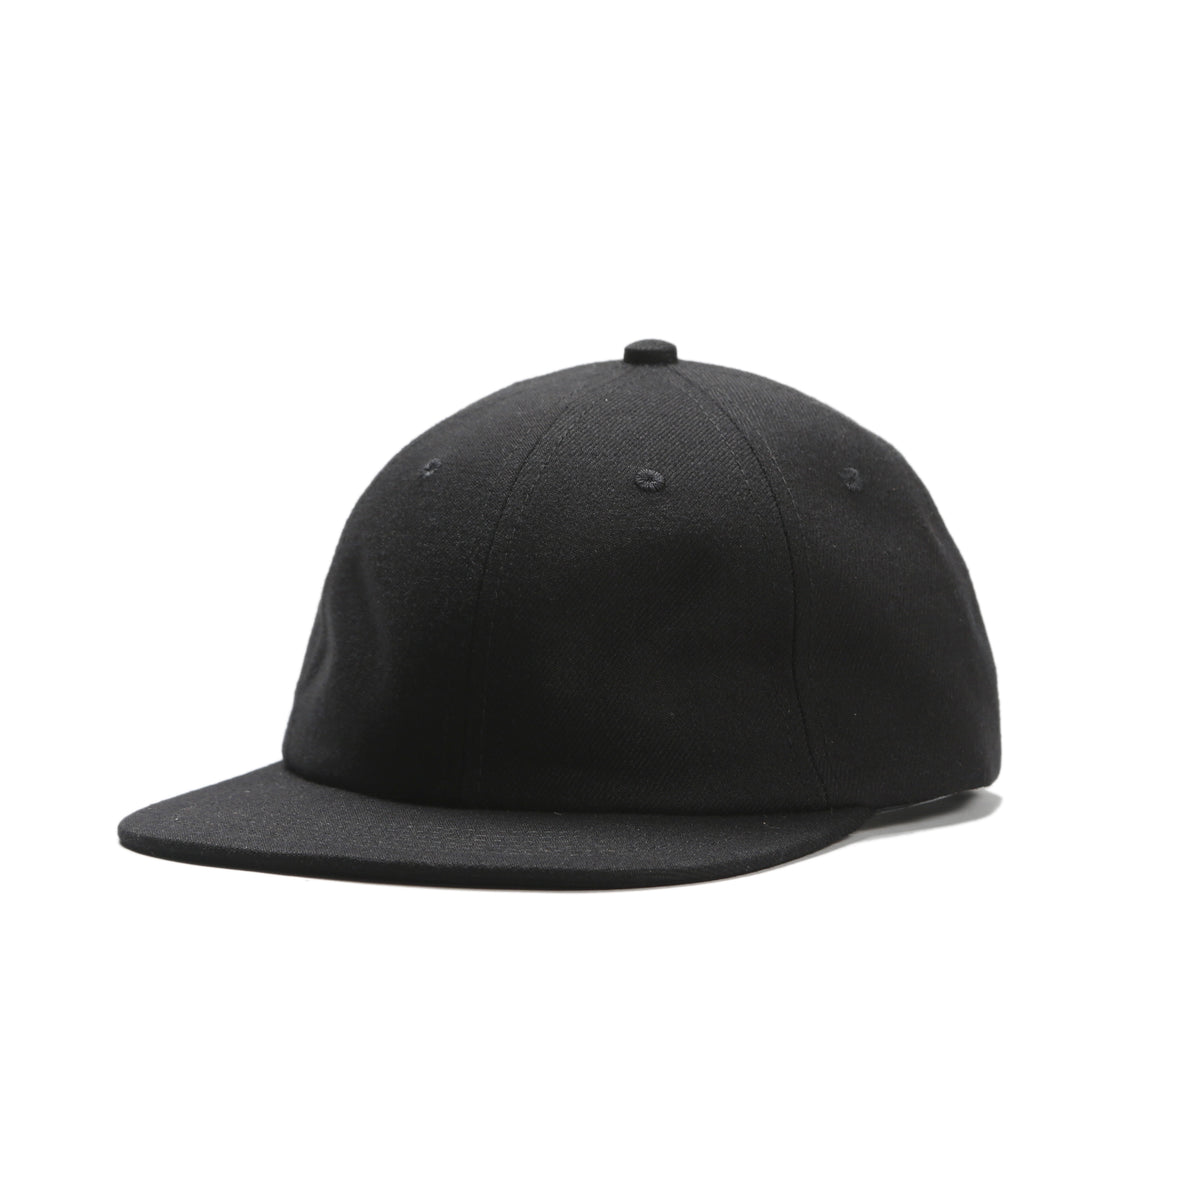 Vault V2 Cap - Black/White